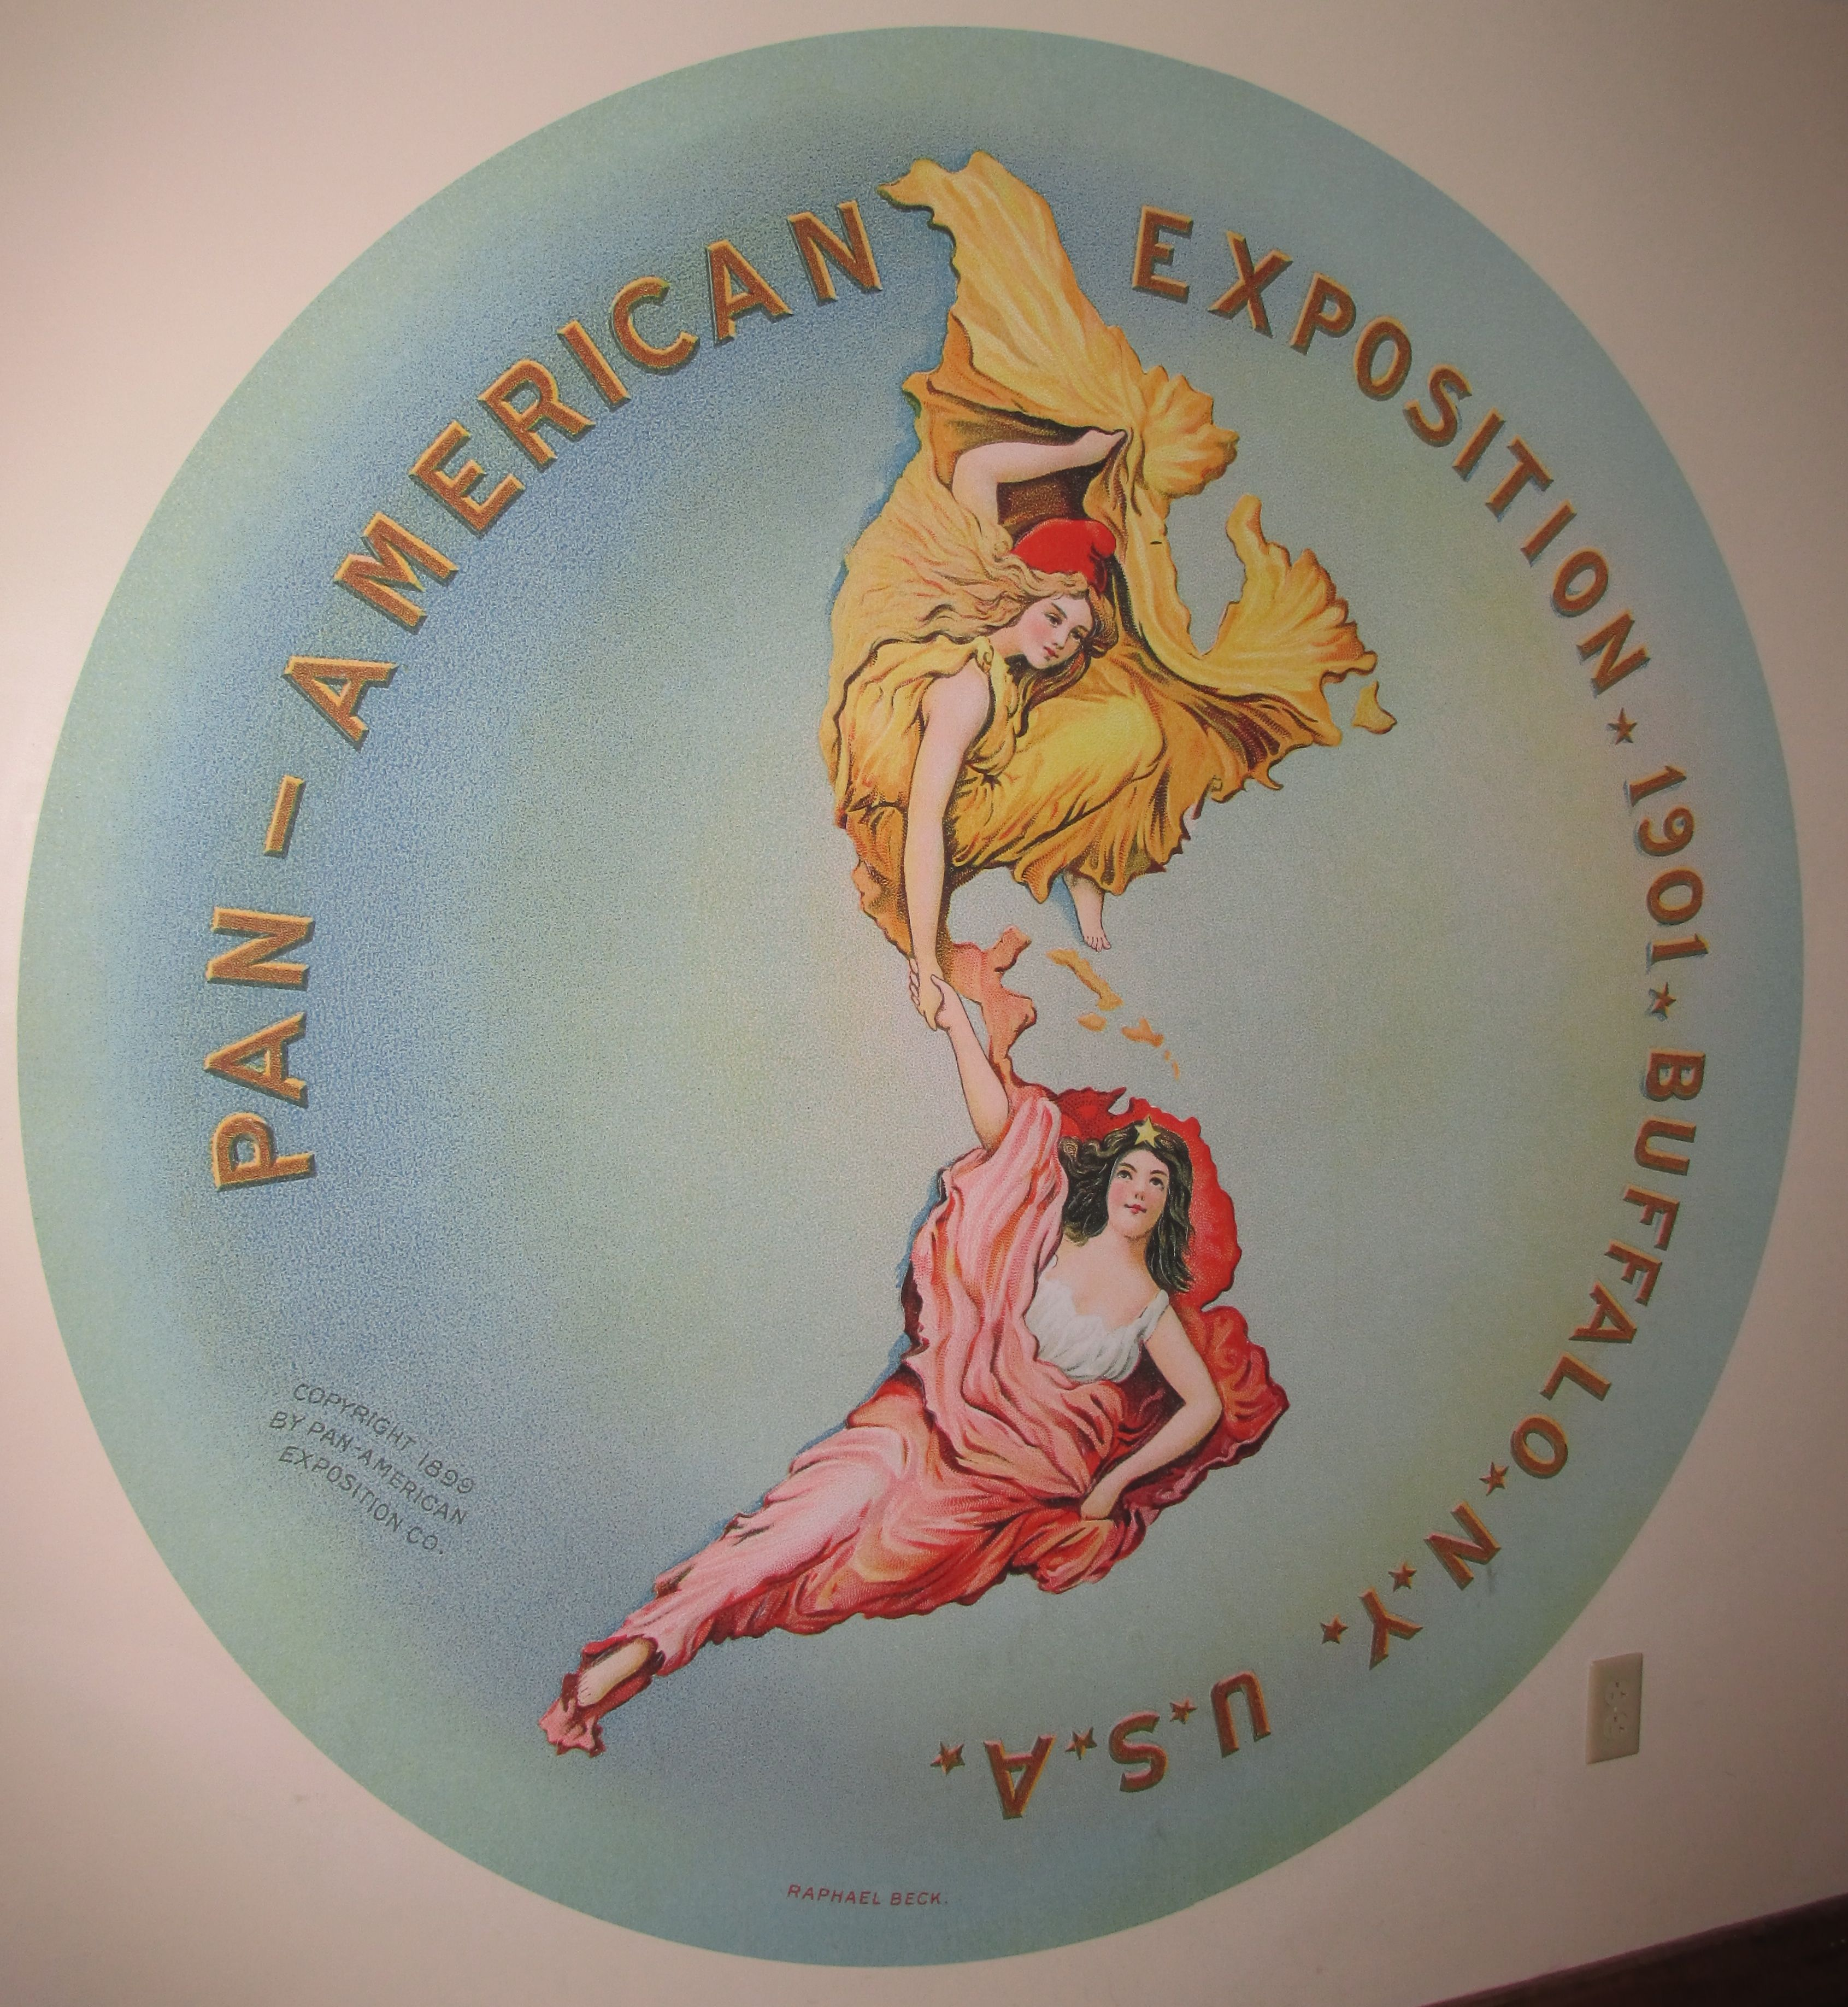 The Pan[American Exposition Logo